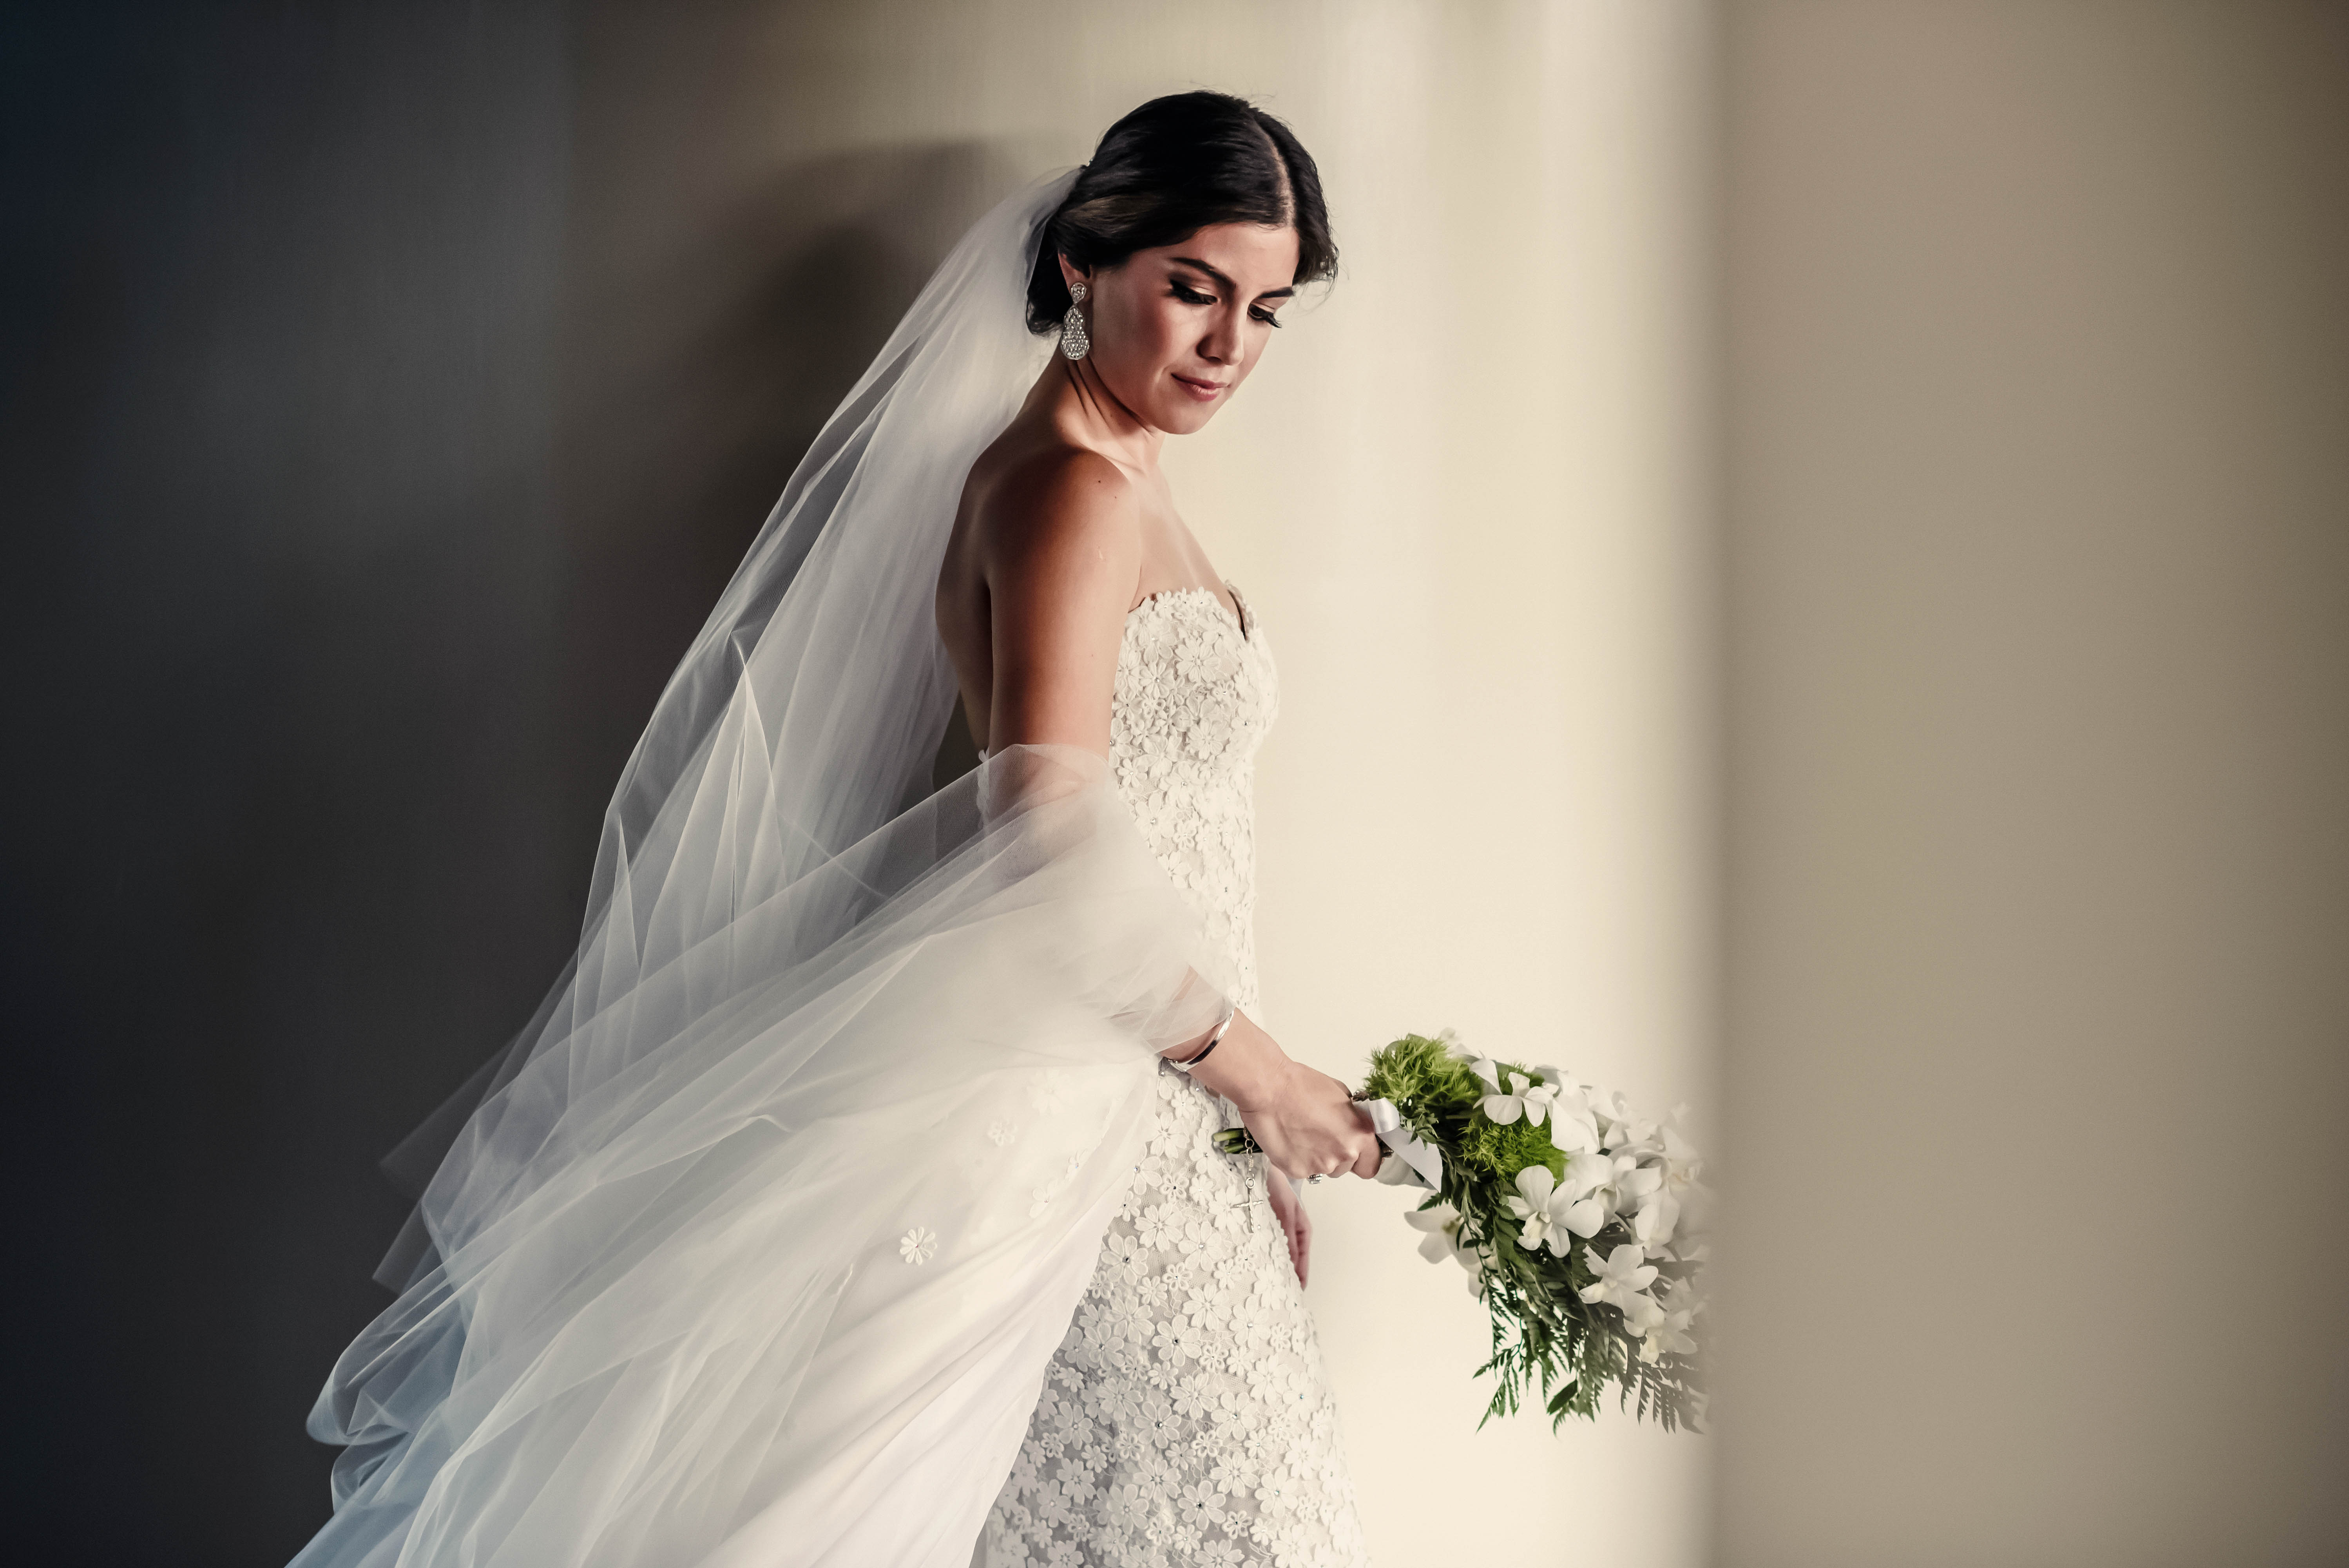 Spanish bride in long veil and strapless dress - photo by El Marco Rojo